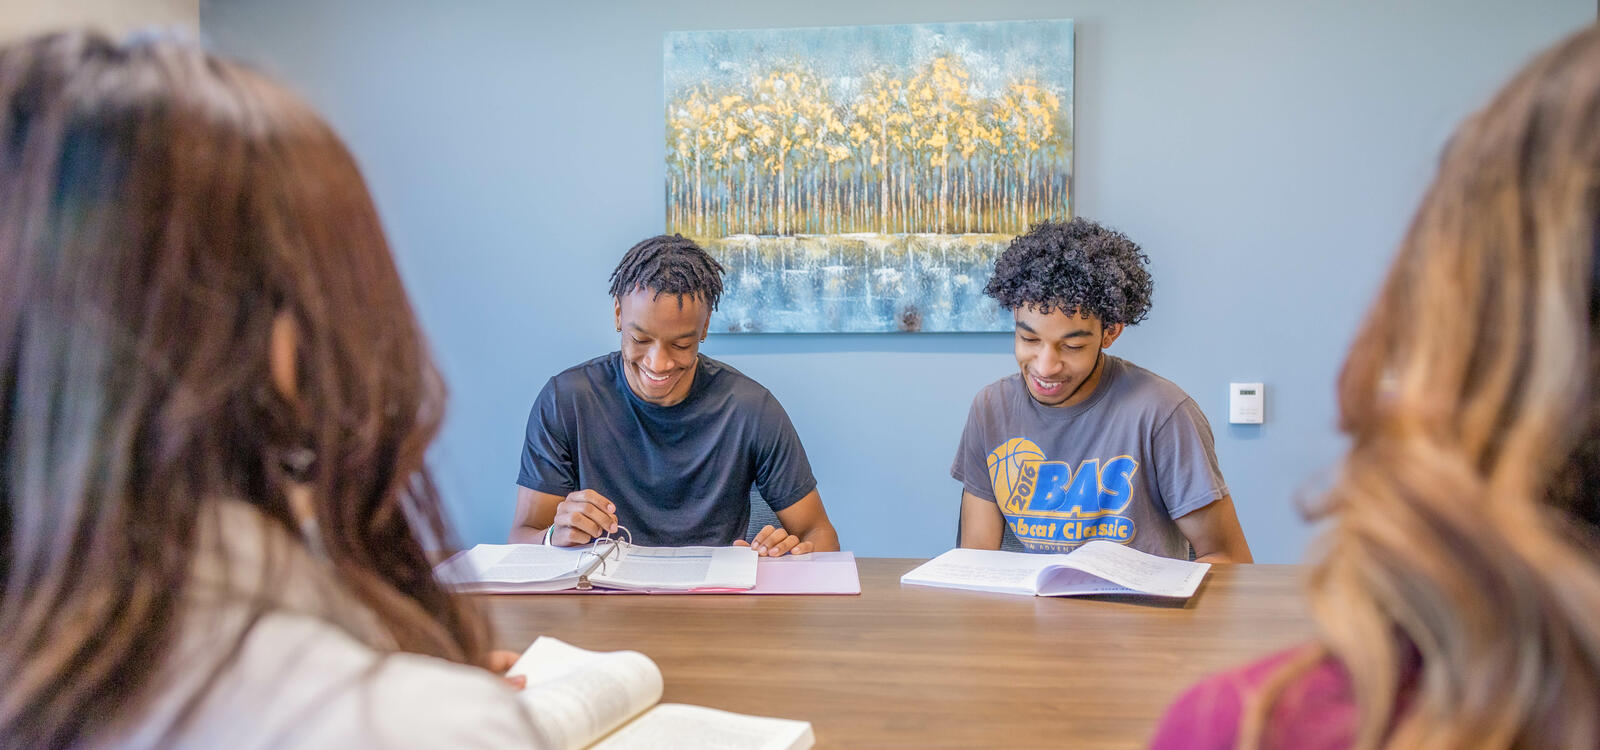 Two male students smiling and reviewing with other students.